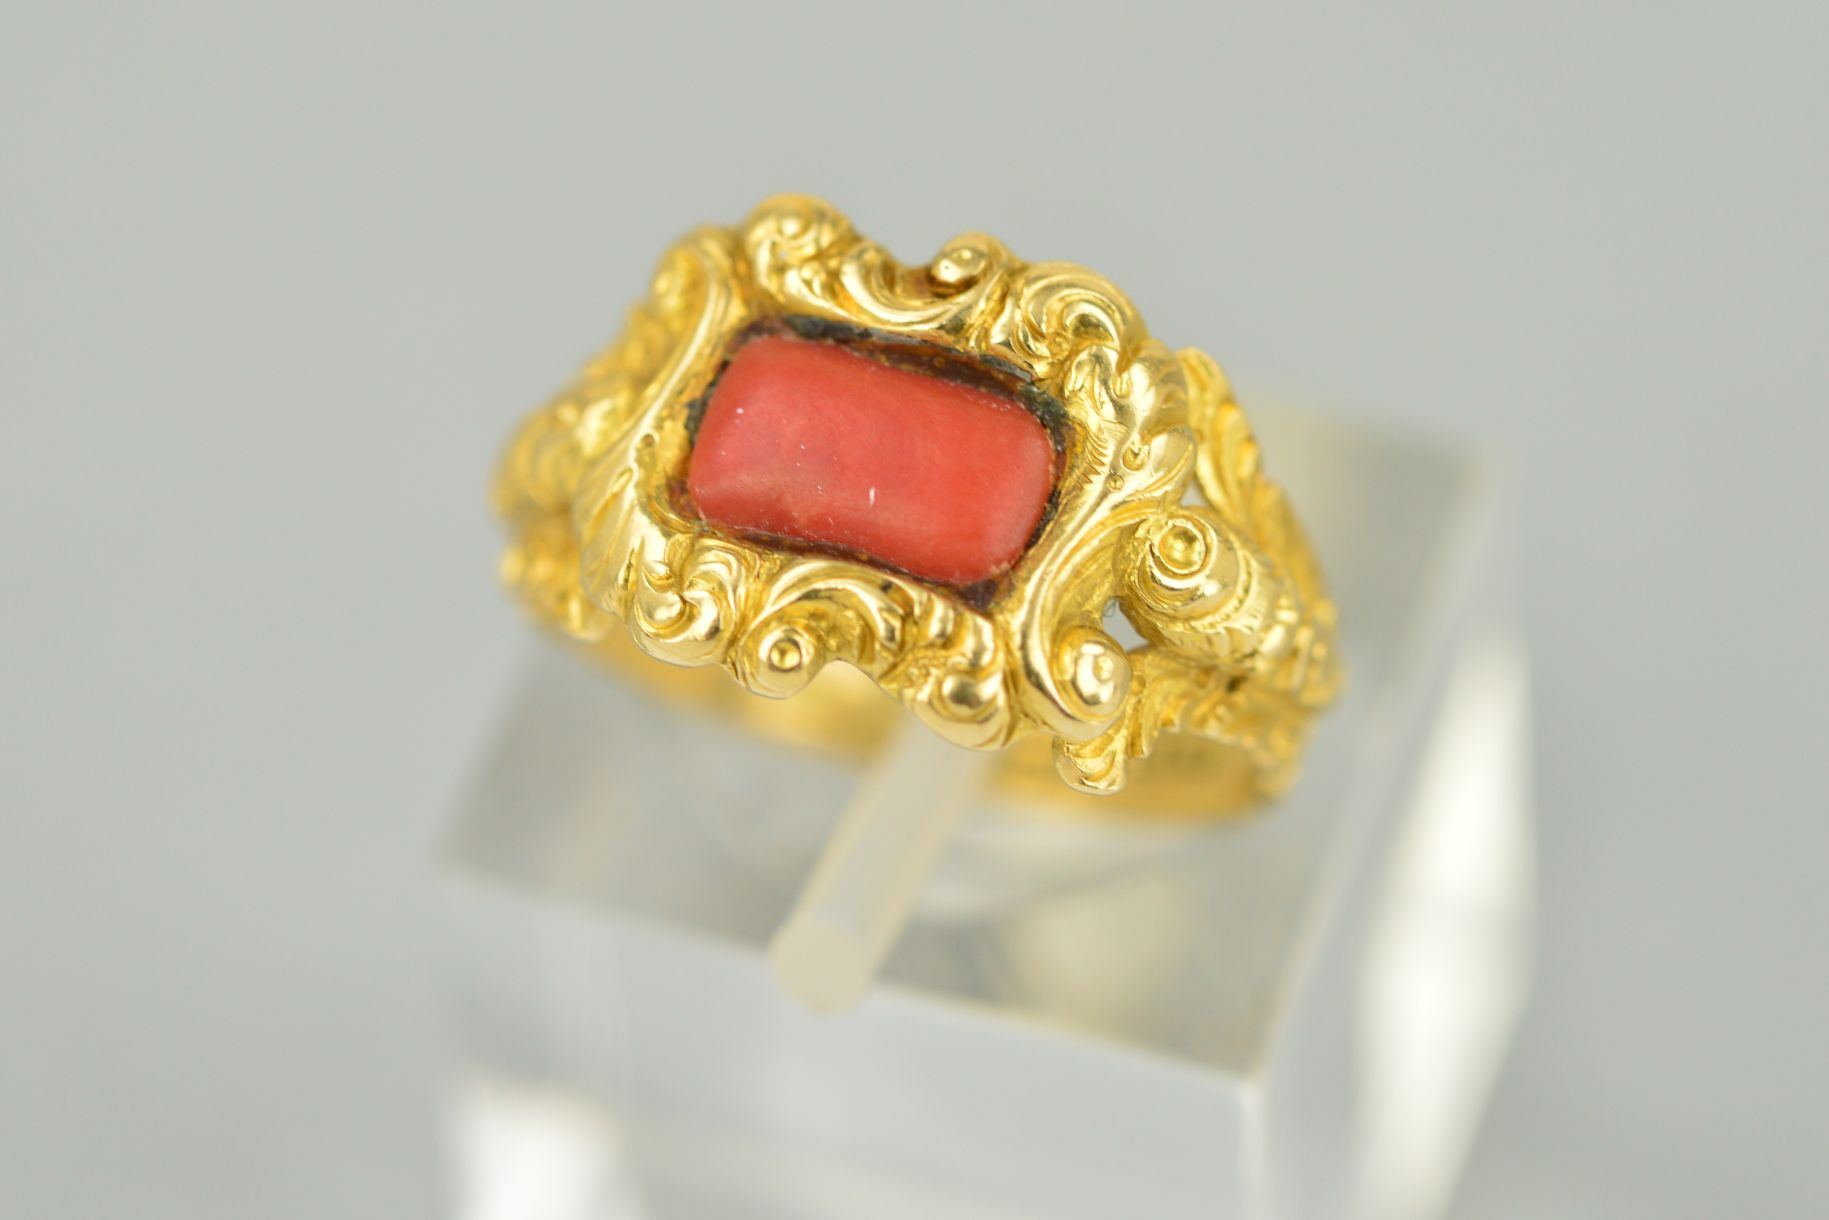 Lot 54 - A LATE GEORGIAN GOLD AND CORAL RING, centering on rectangular coral stone (which is a likely later